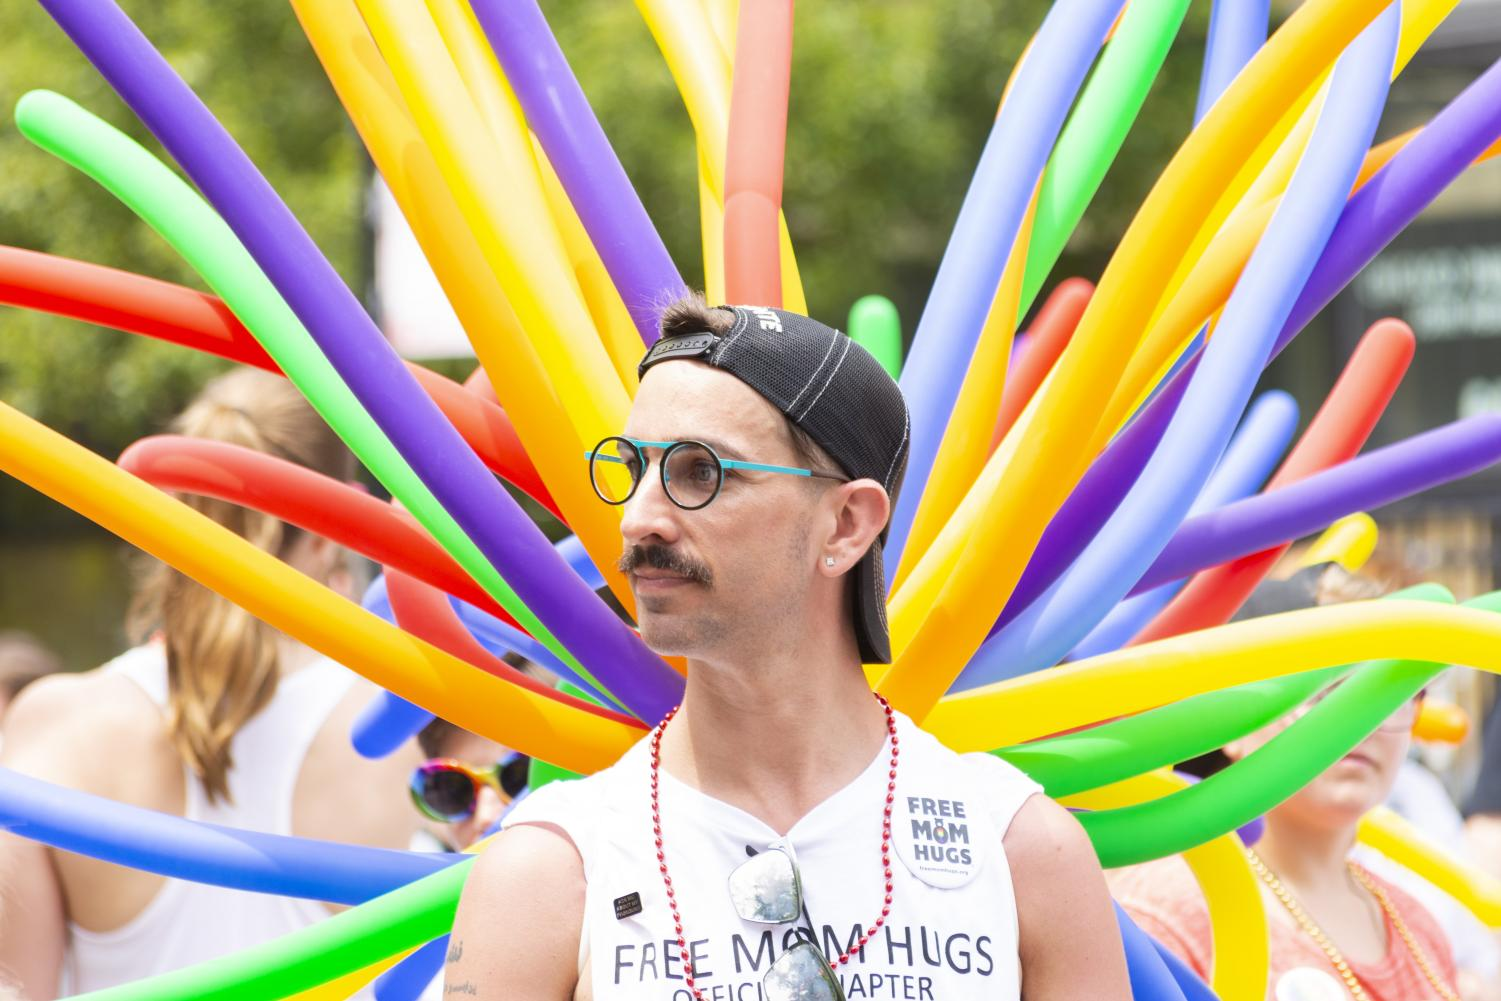 Large+crowds+gathered+to+celebrate+Pride+in+Chicago+with+the+city%27s+50th+annual+Pride+Parade+June+30.